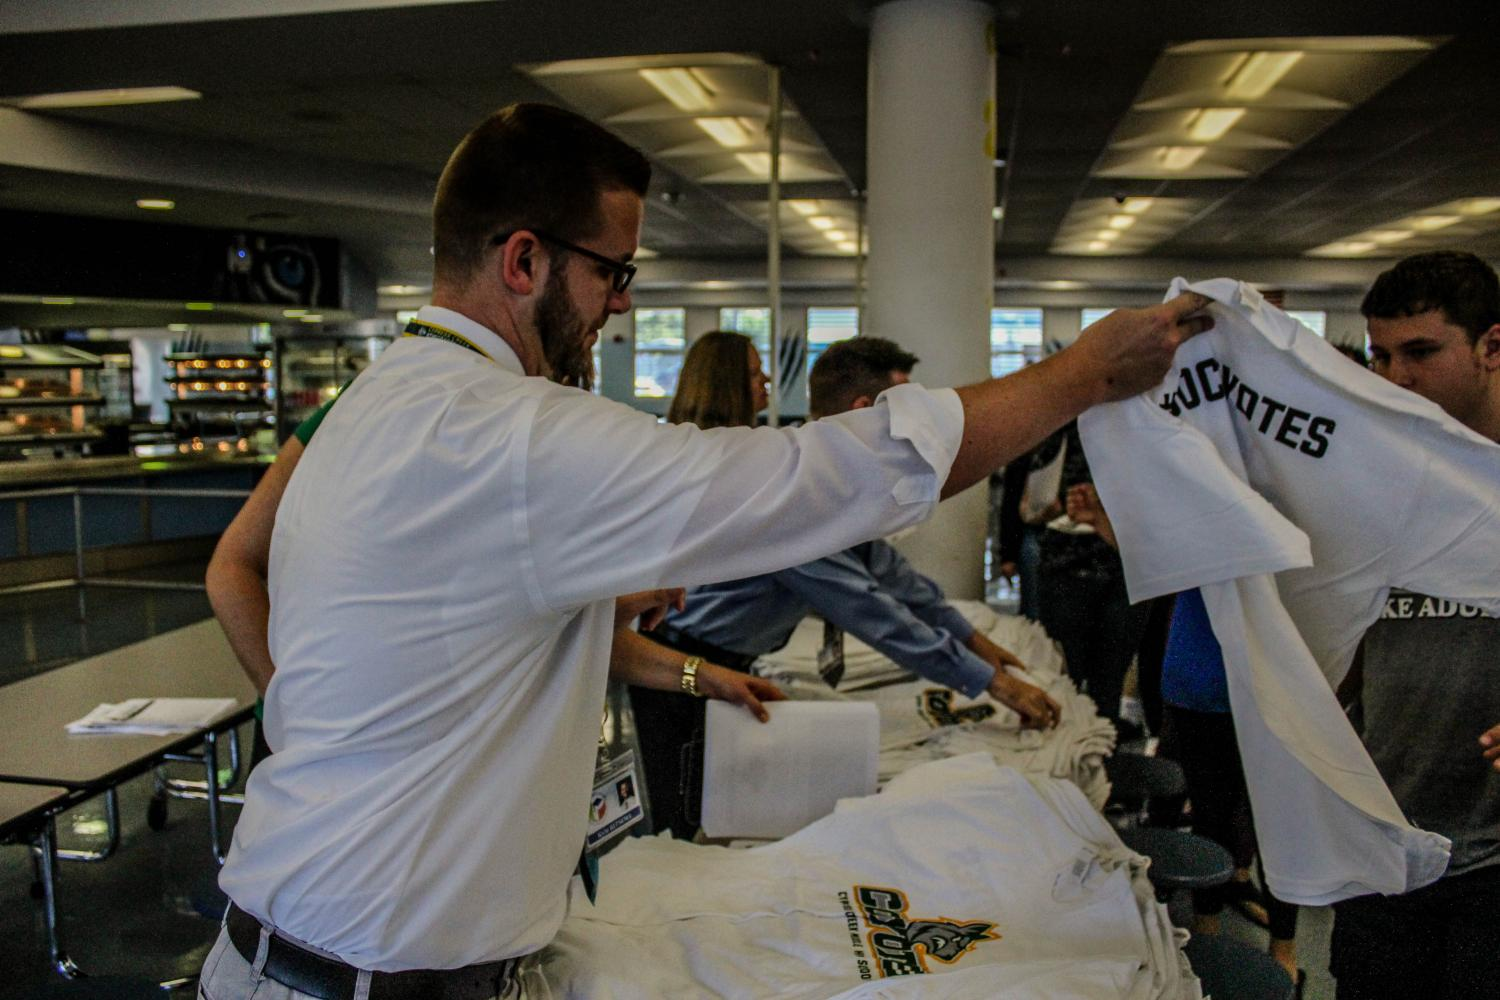 Handing+Out+Shirts+at+WCHS